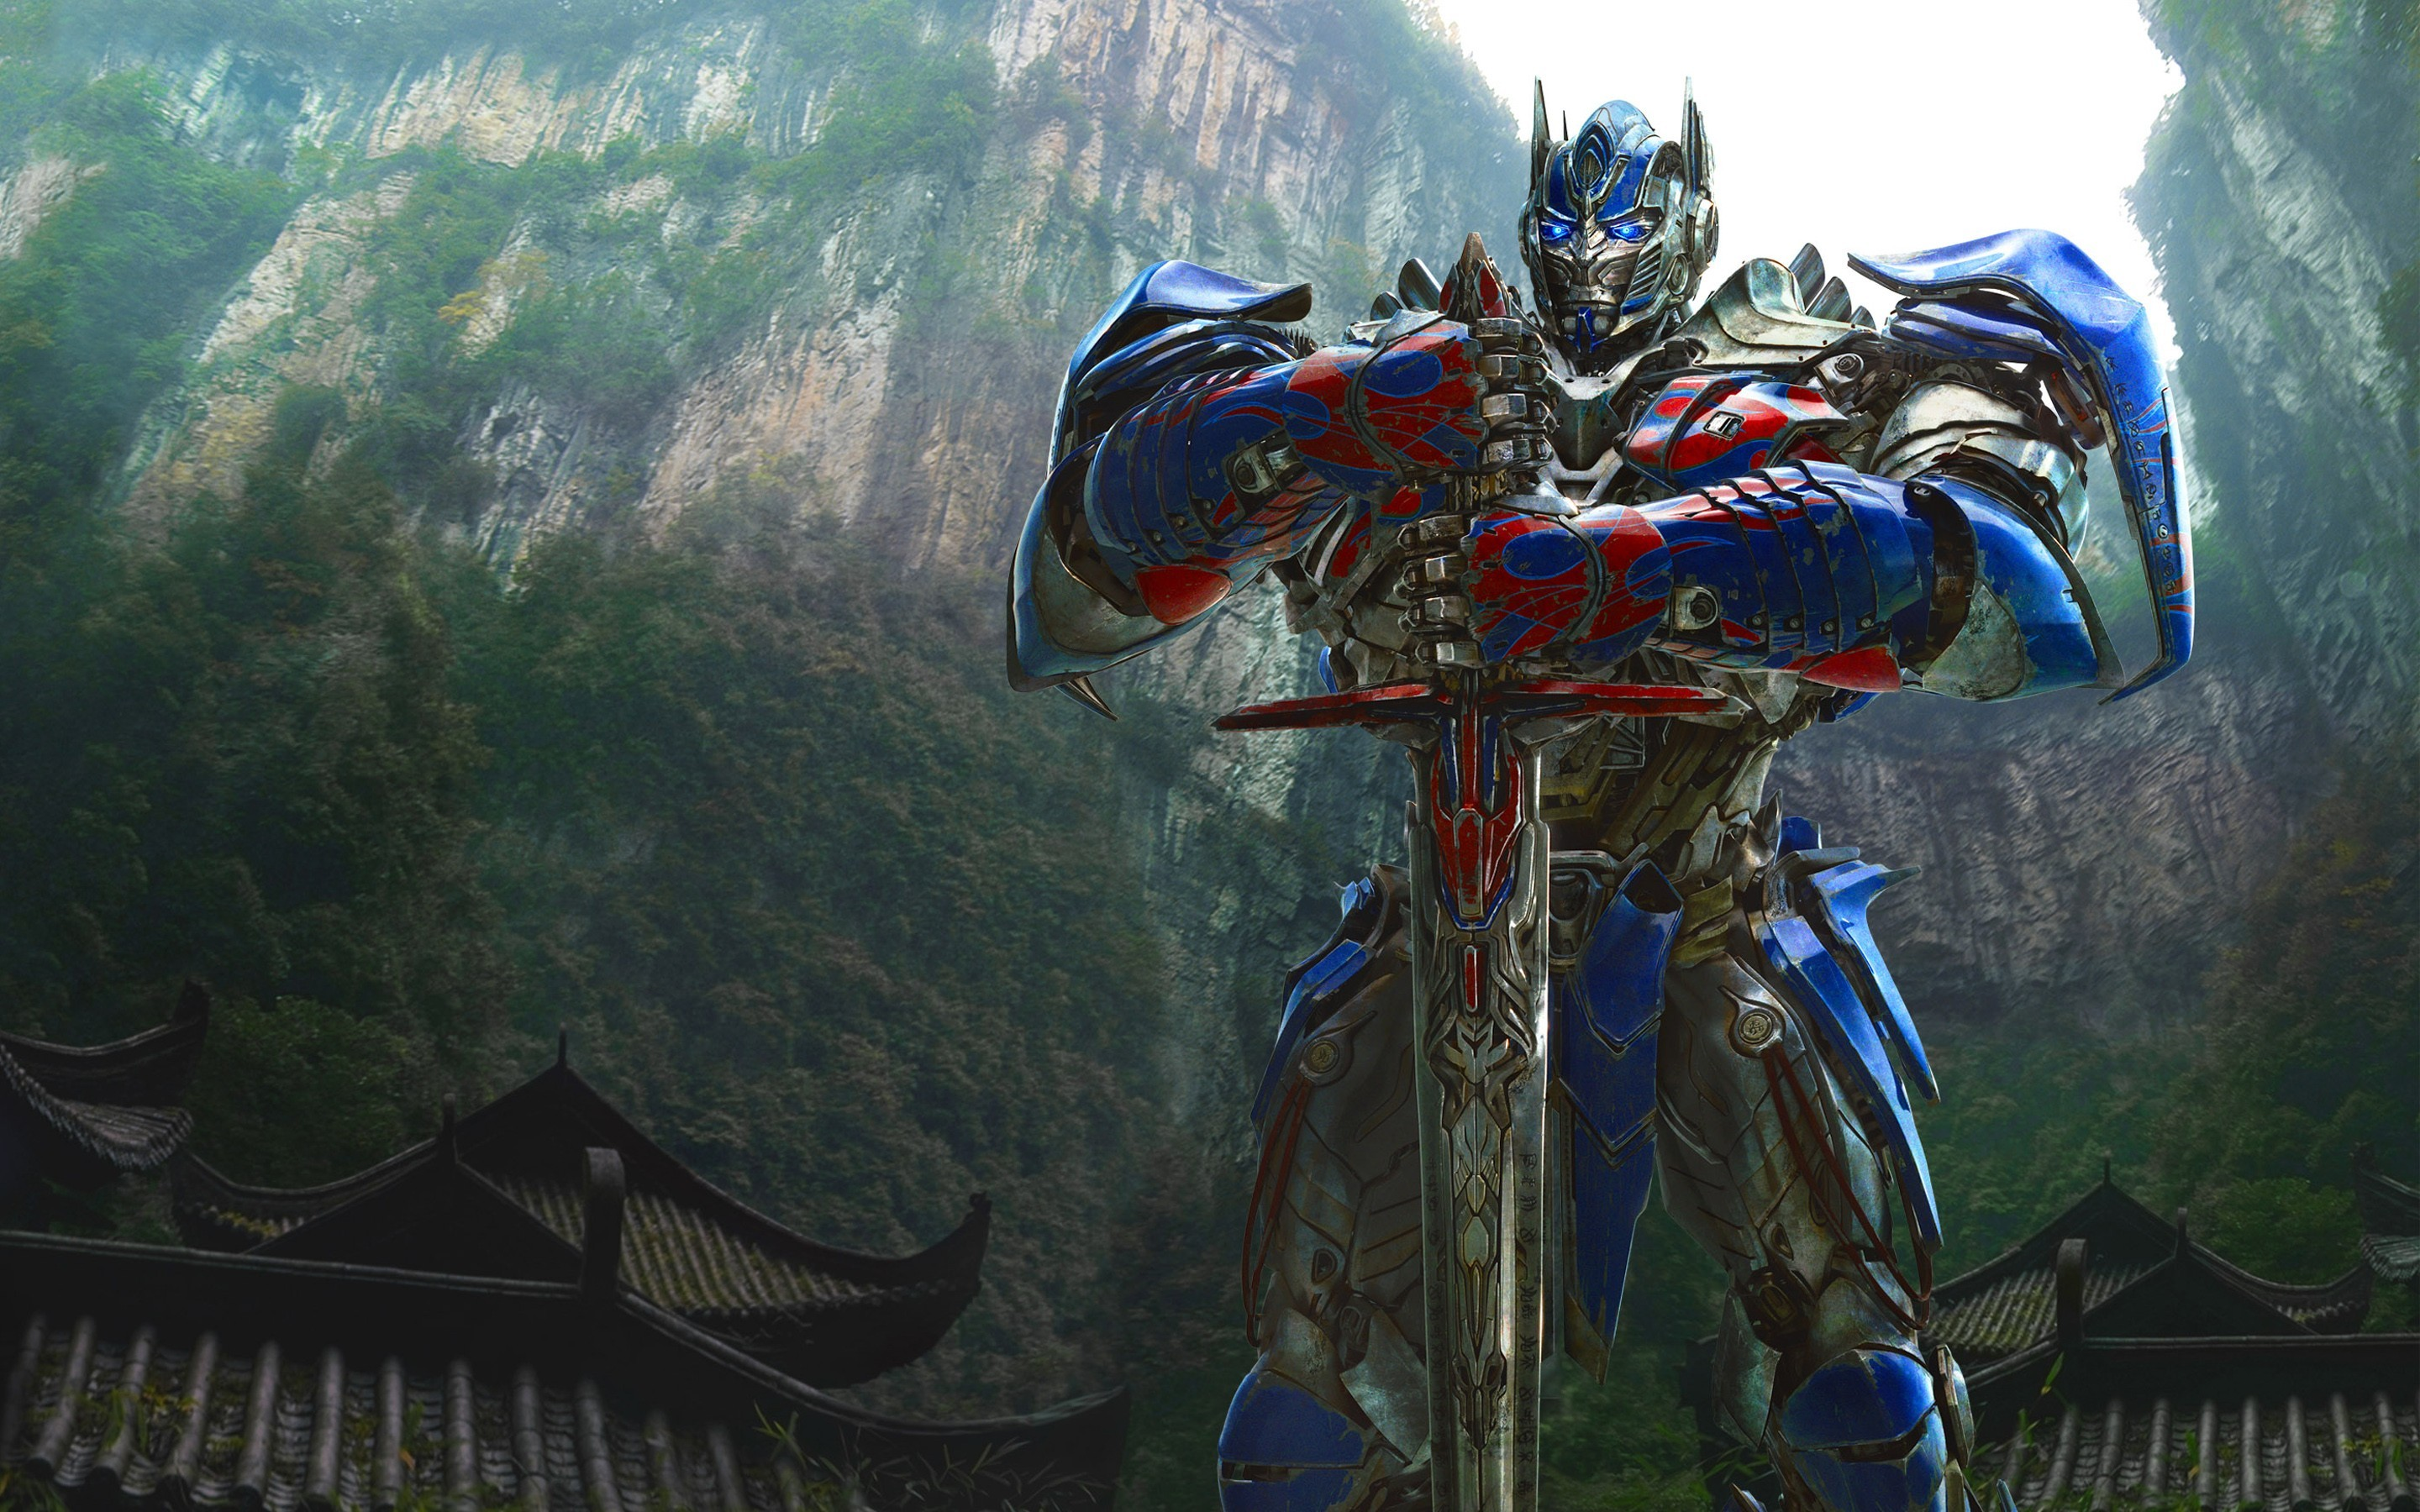 My Free Wallpapers Movies Wallpaper Transformers Barricade